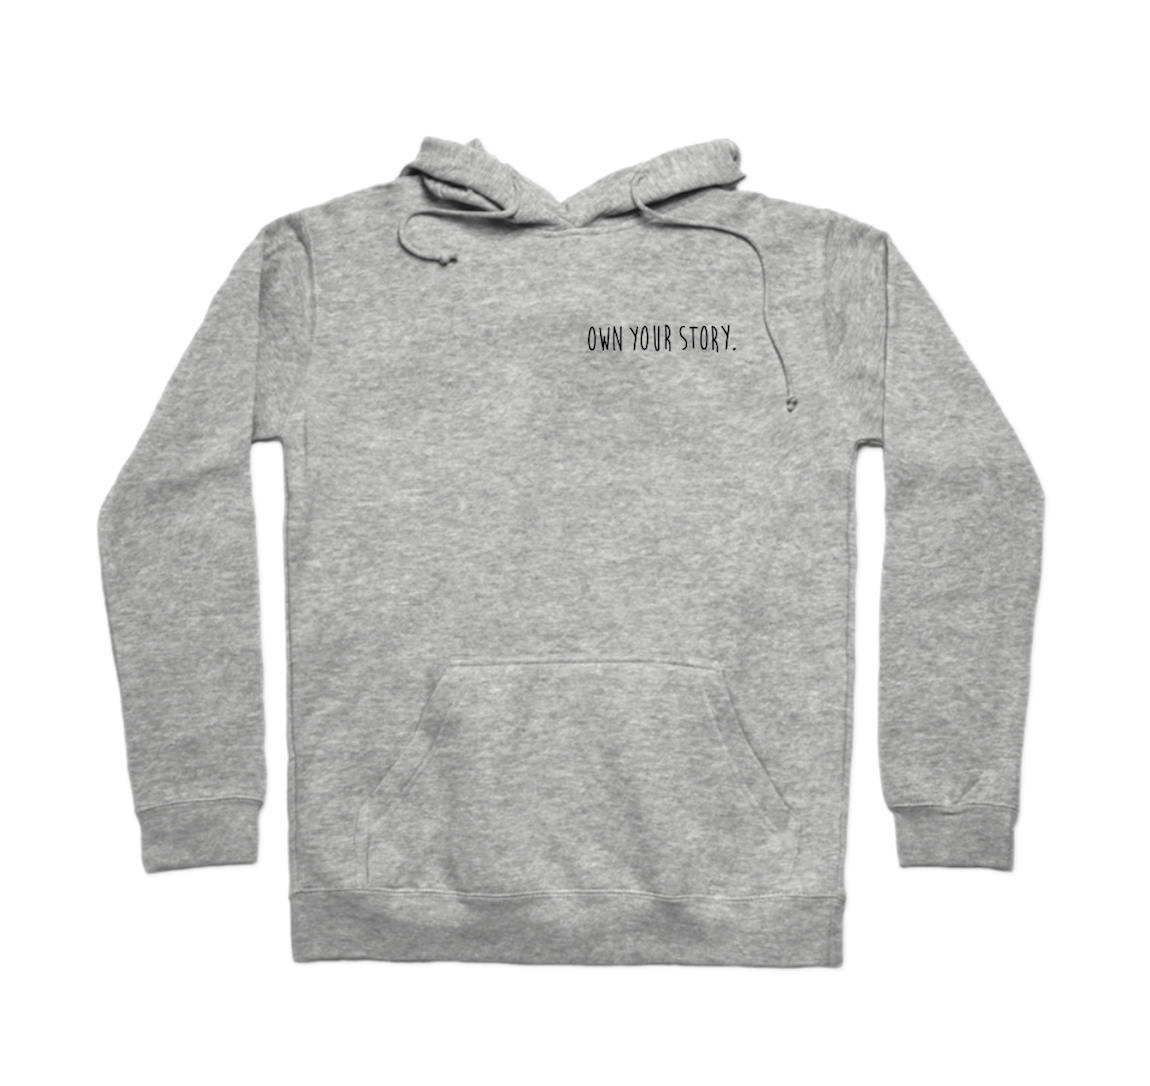 Own Your Story Hoodie - $45